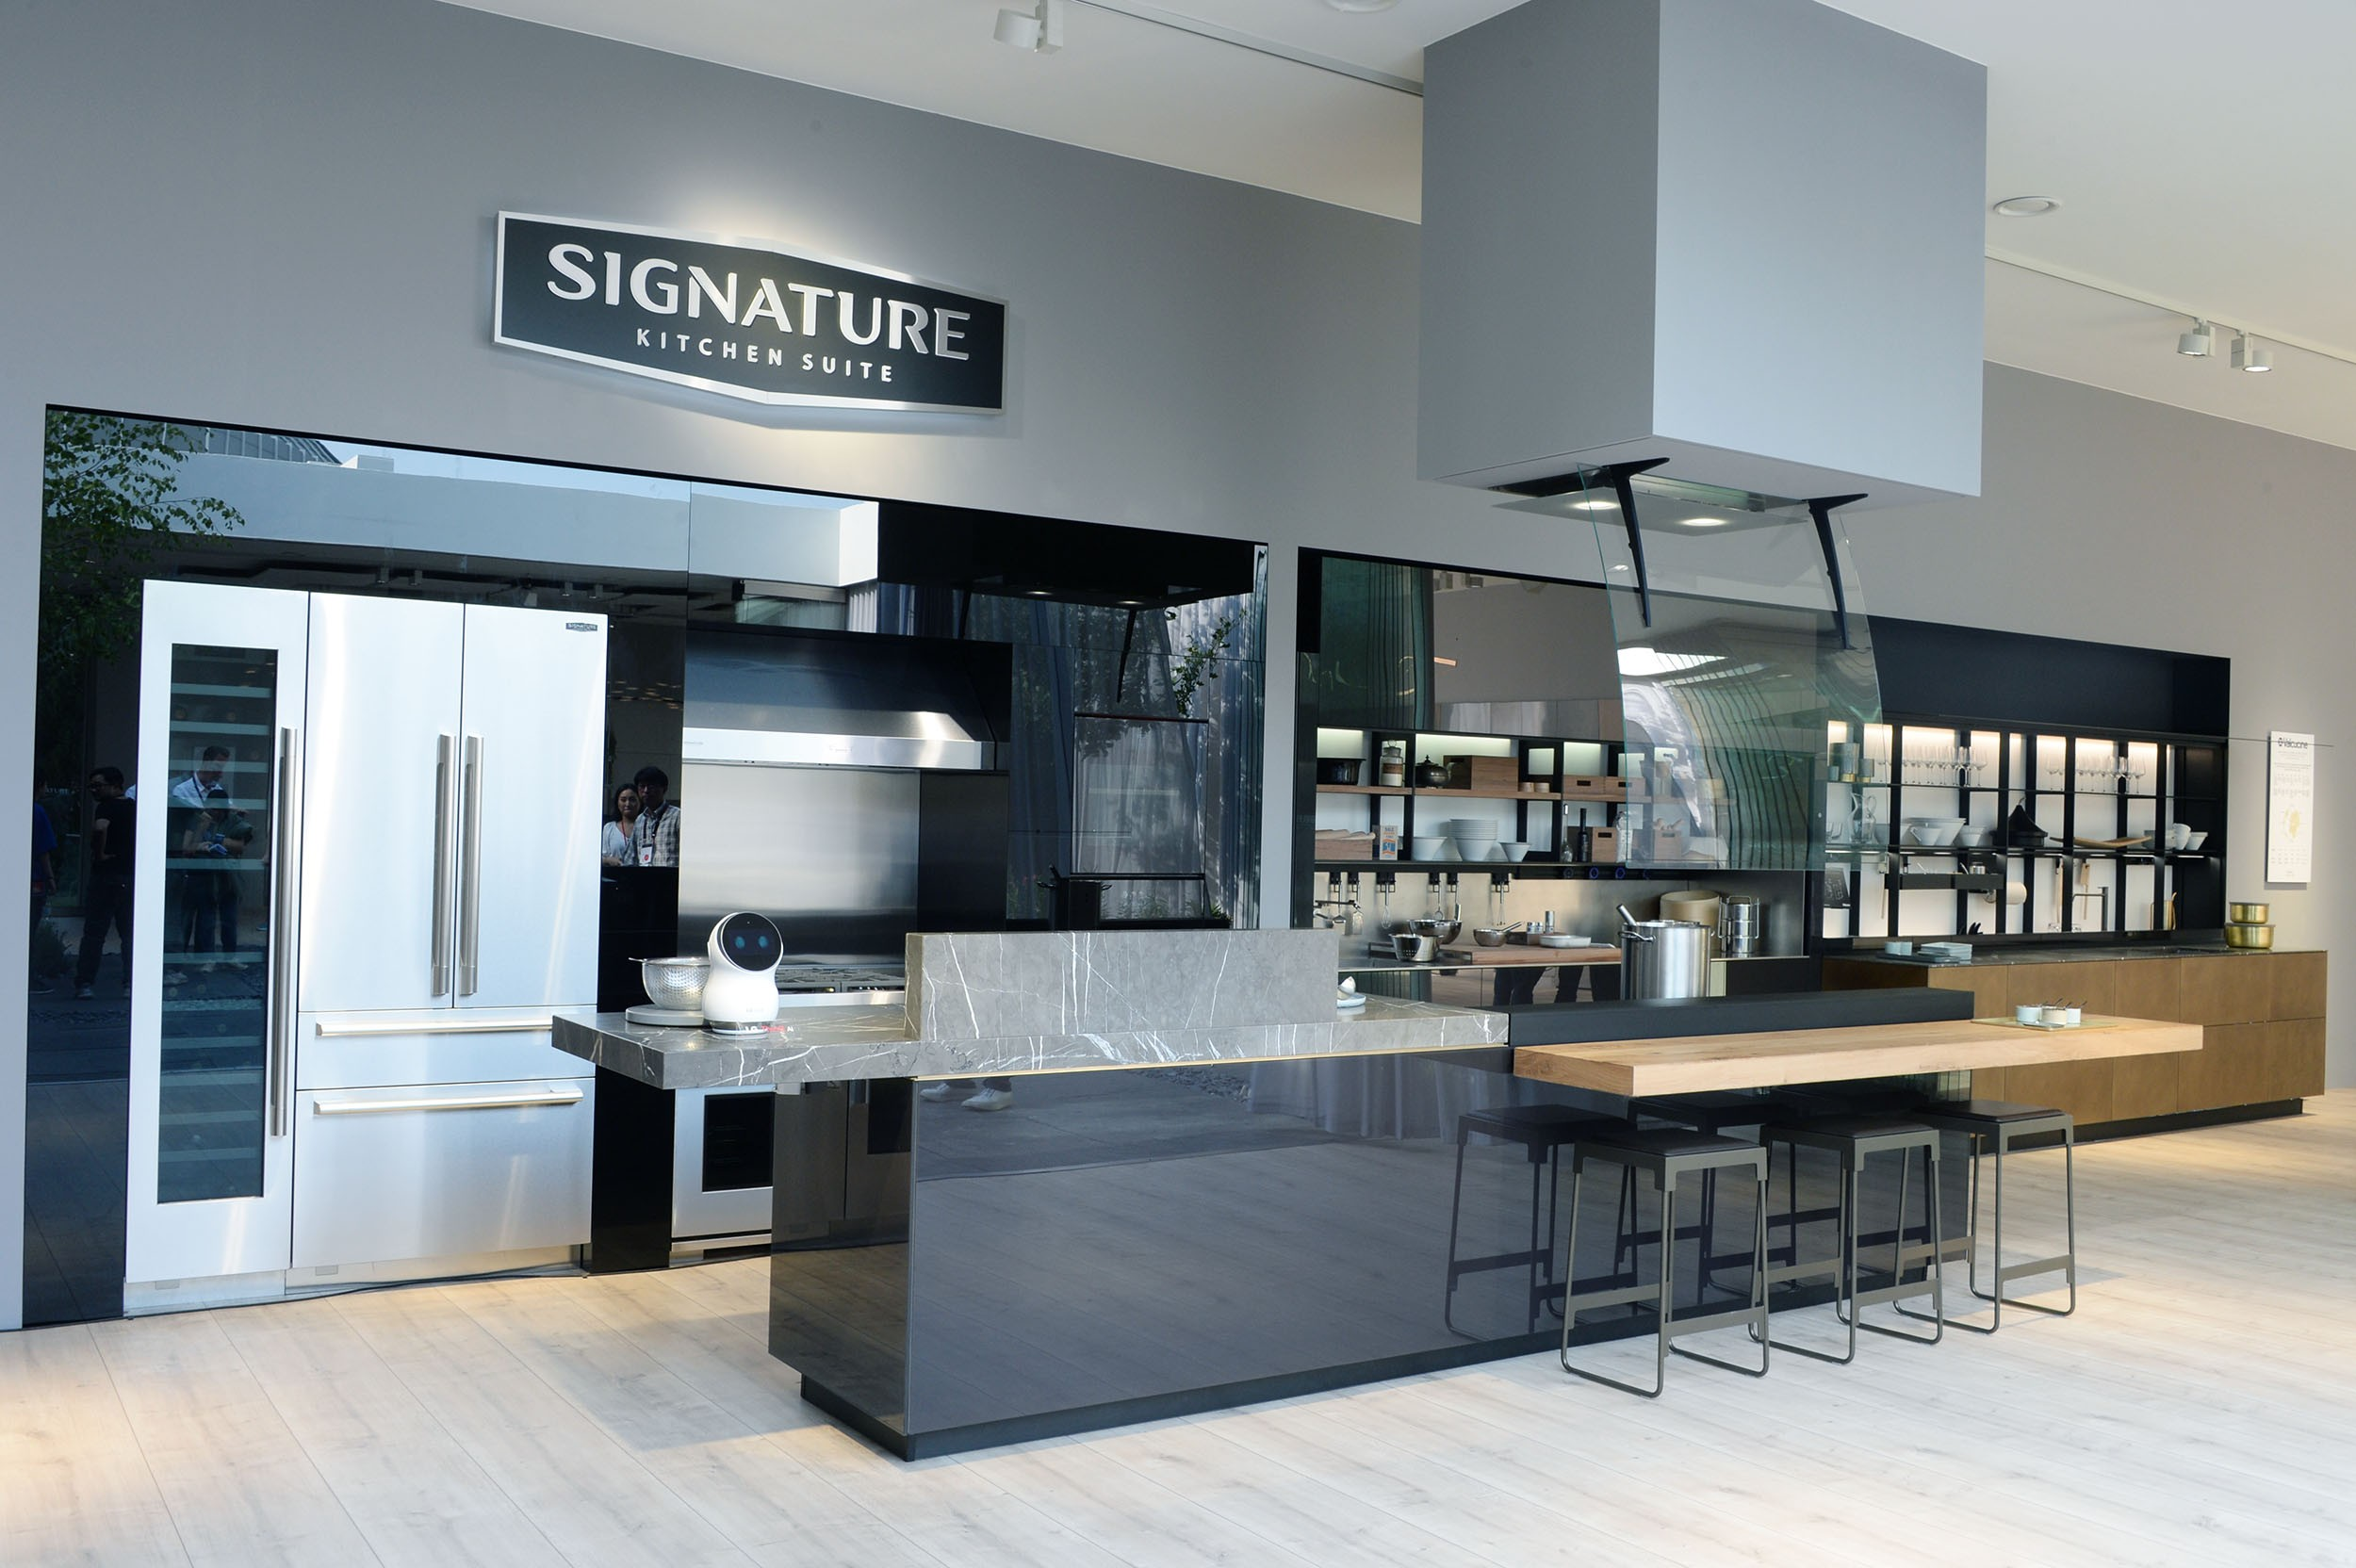 SIGNATURE KITCHEN SUITE's exhibition hall cooperated with Valcucine at IFA 2018